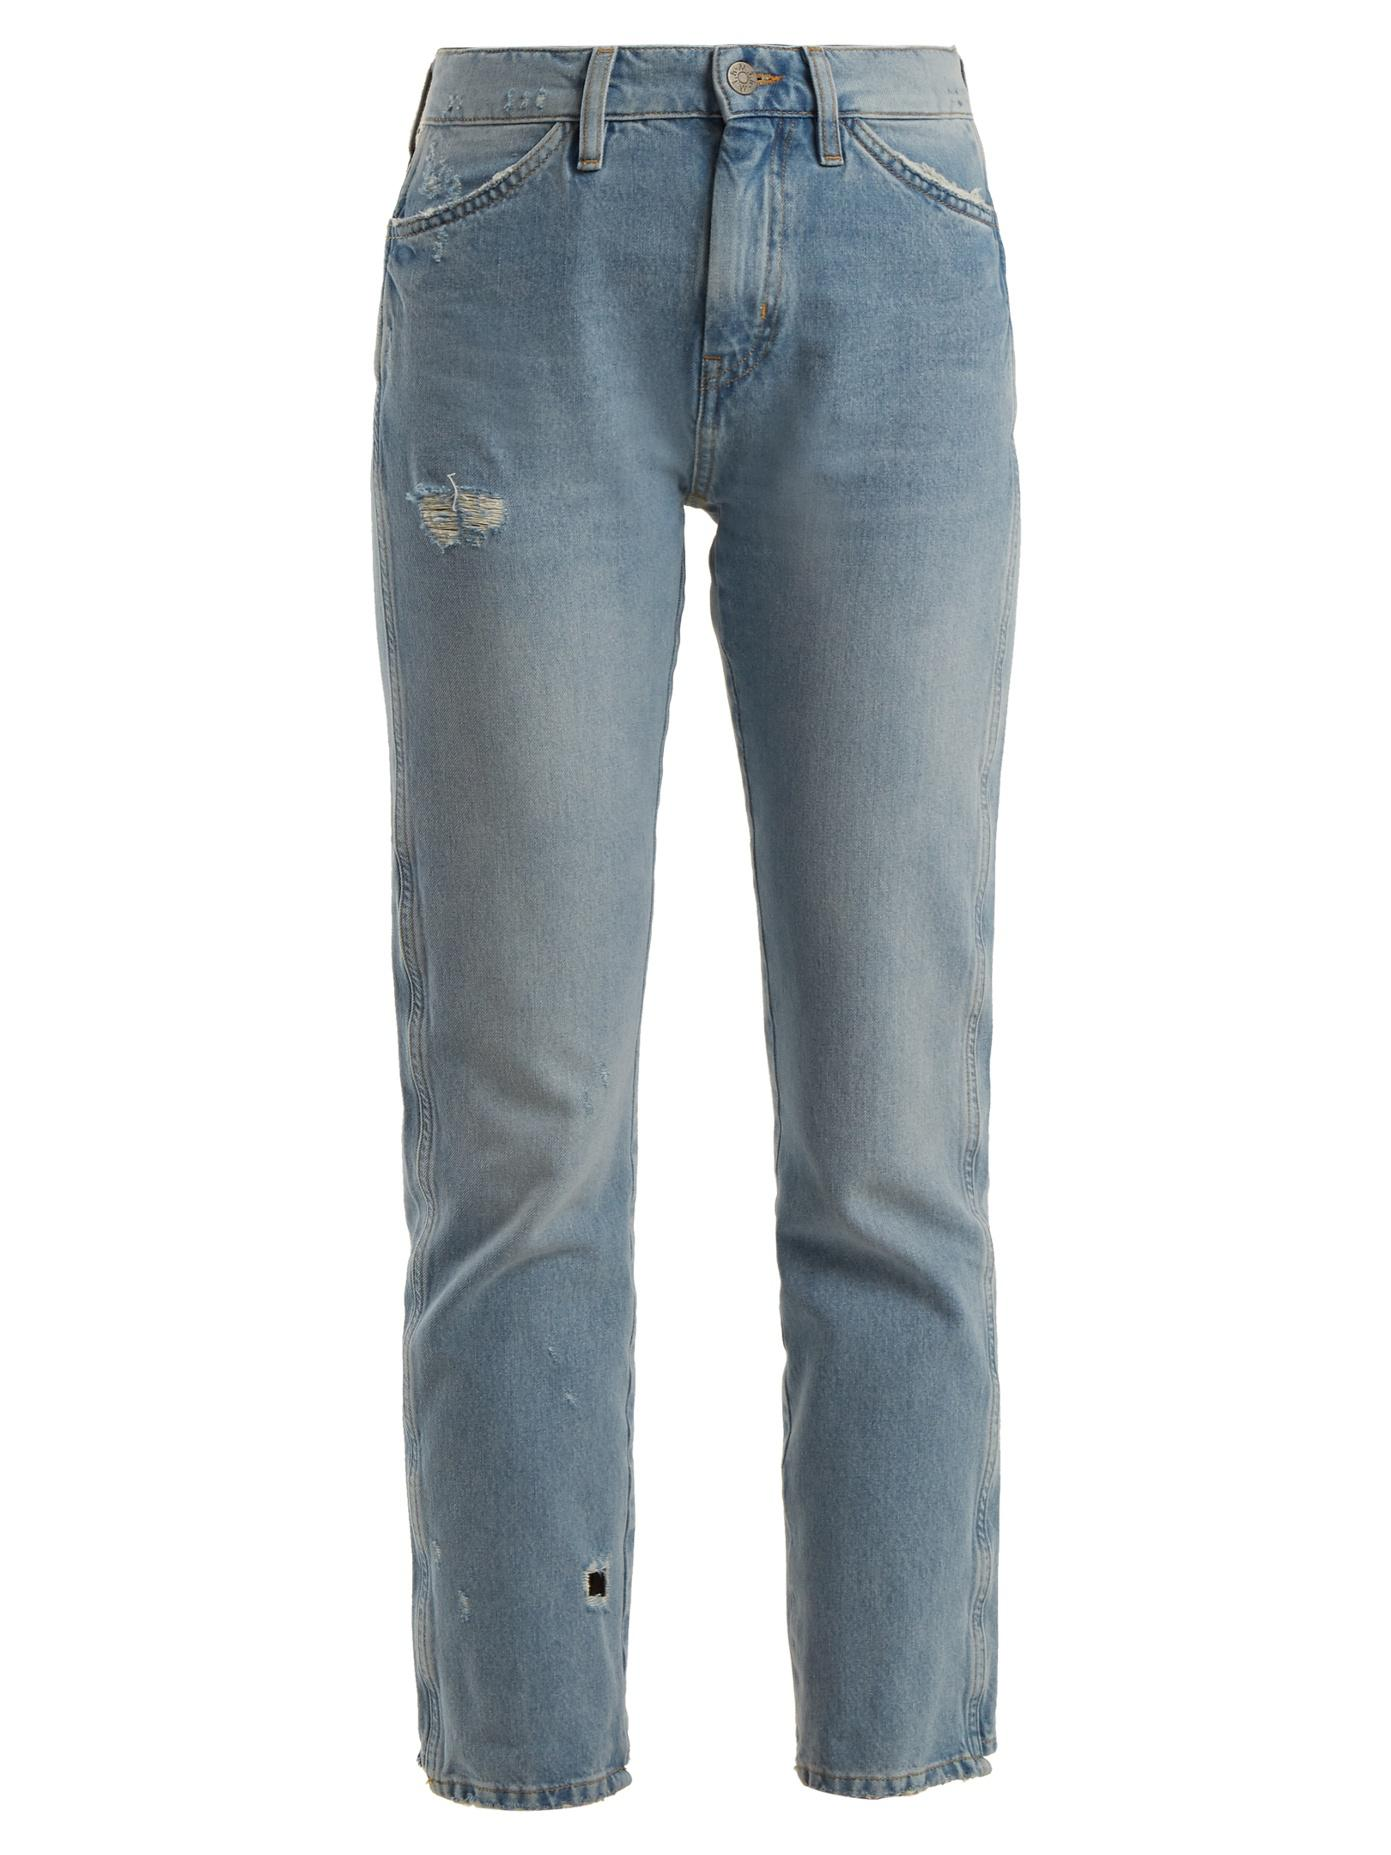 Cult Distressed Mid-rise Straight-leg Jeans - Mid denim Mih Jeans Discounts Free Shipping Excellent 8davw